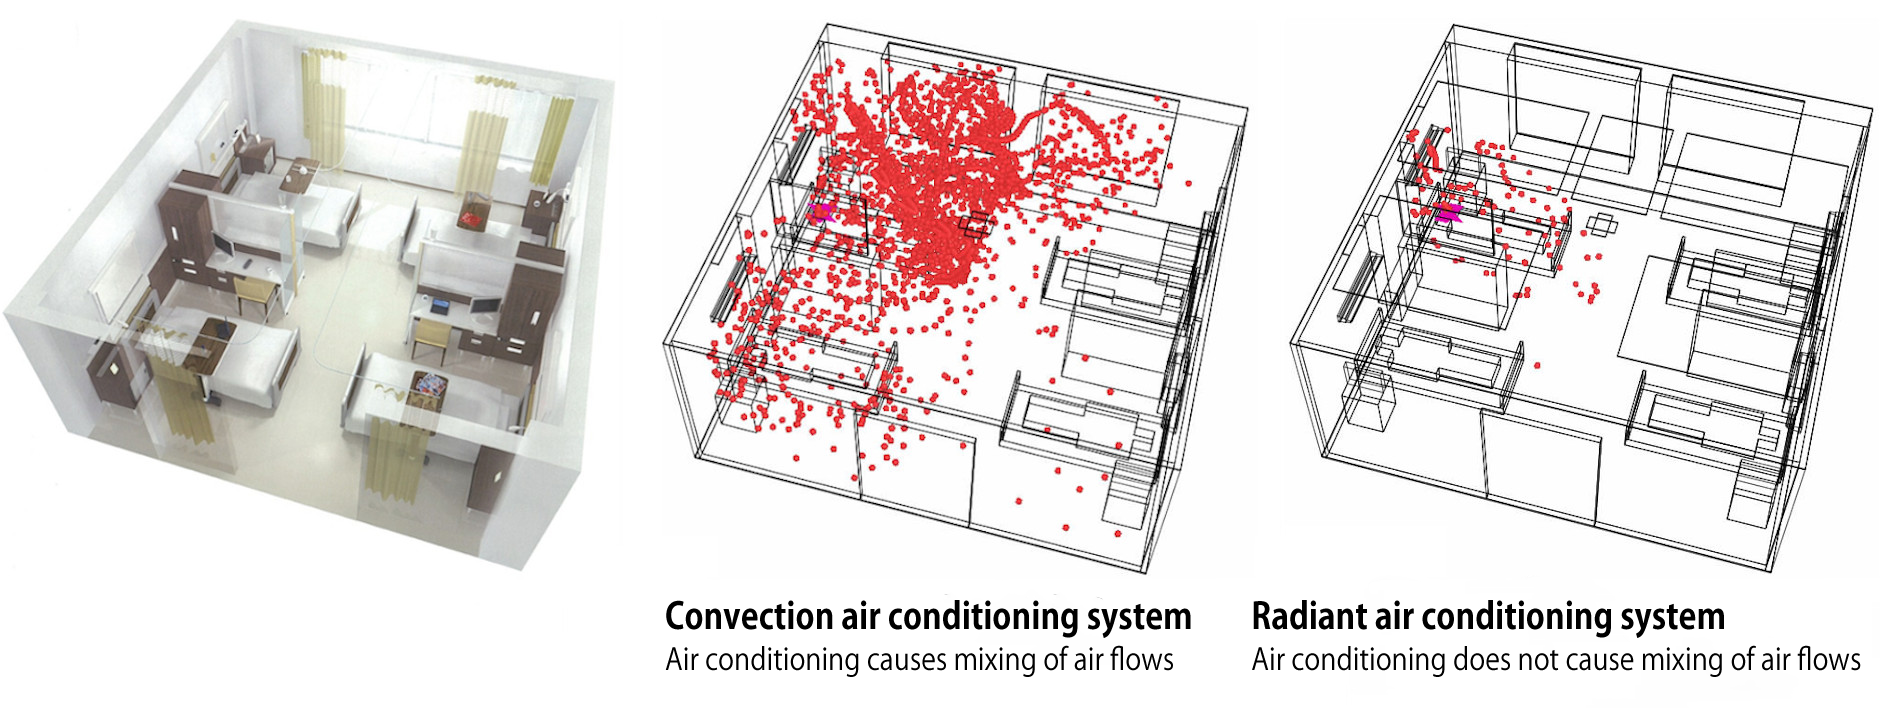 Dispersion of microparticles with a convection air conditioning system and a radiant air conditioning system (simulation)